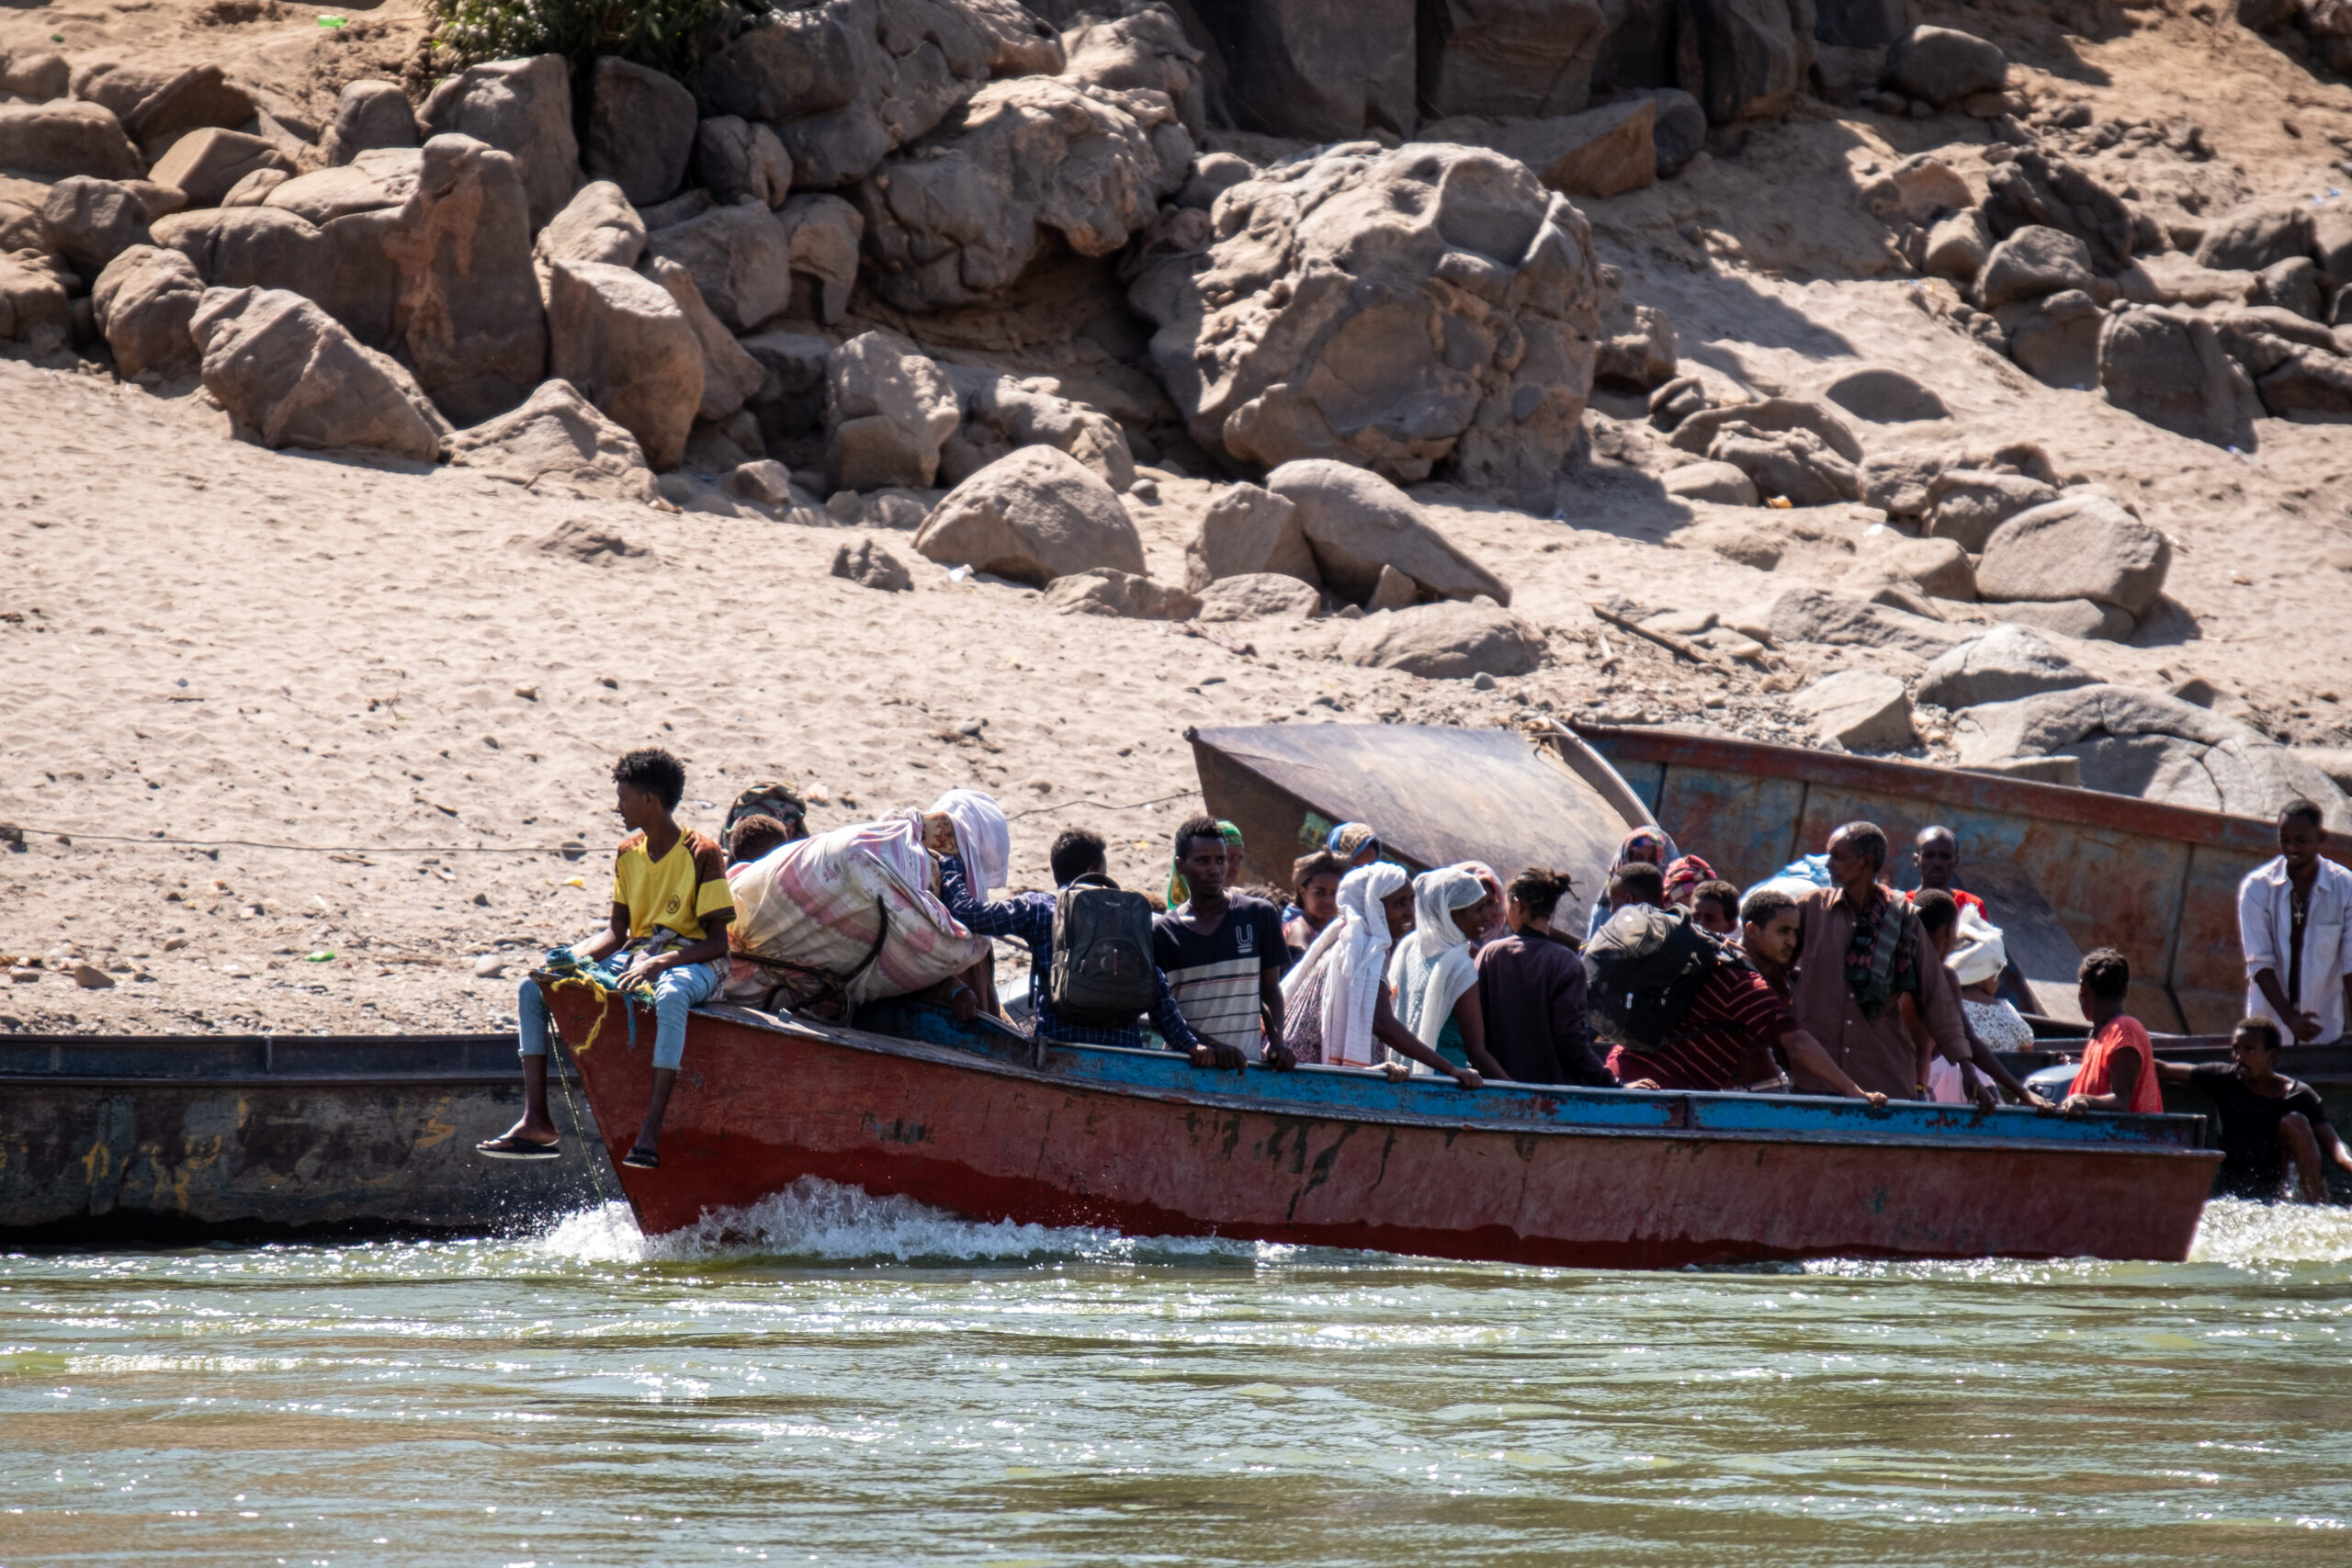 Ethiopian refugees crossing the Tekeze River in a boat. Photo by Joost Bastmeijer.